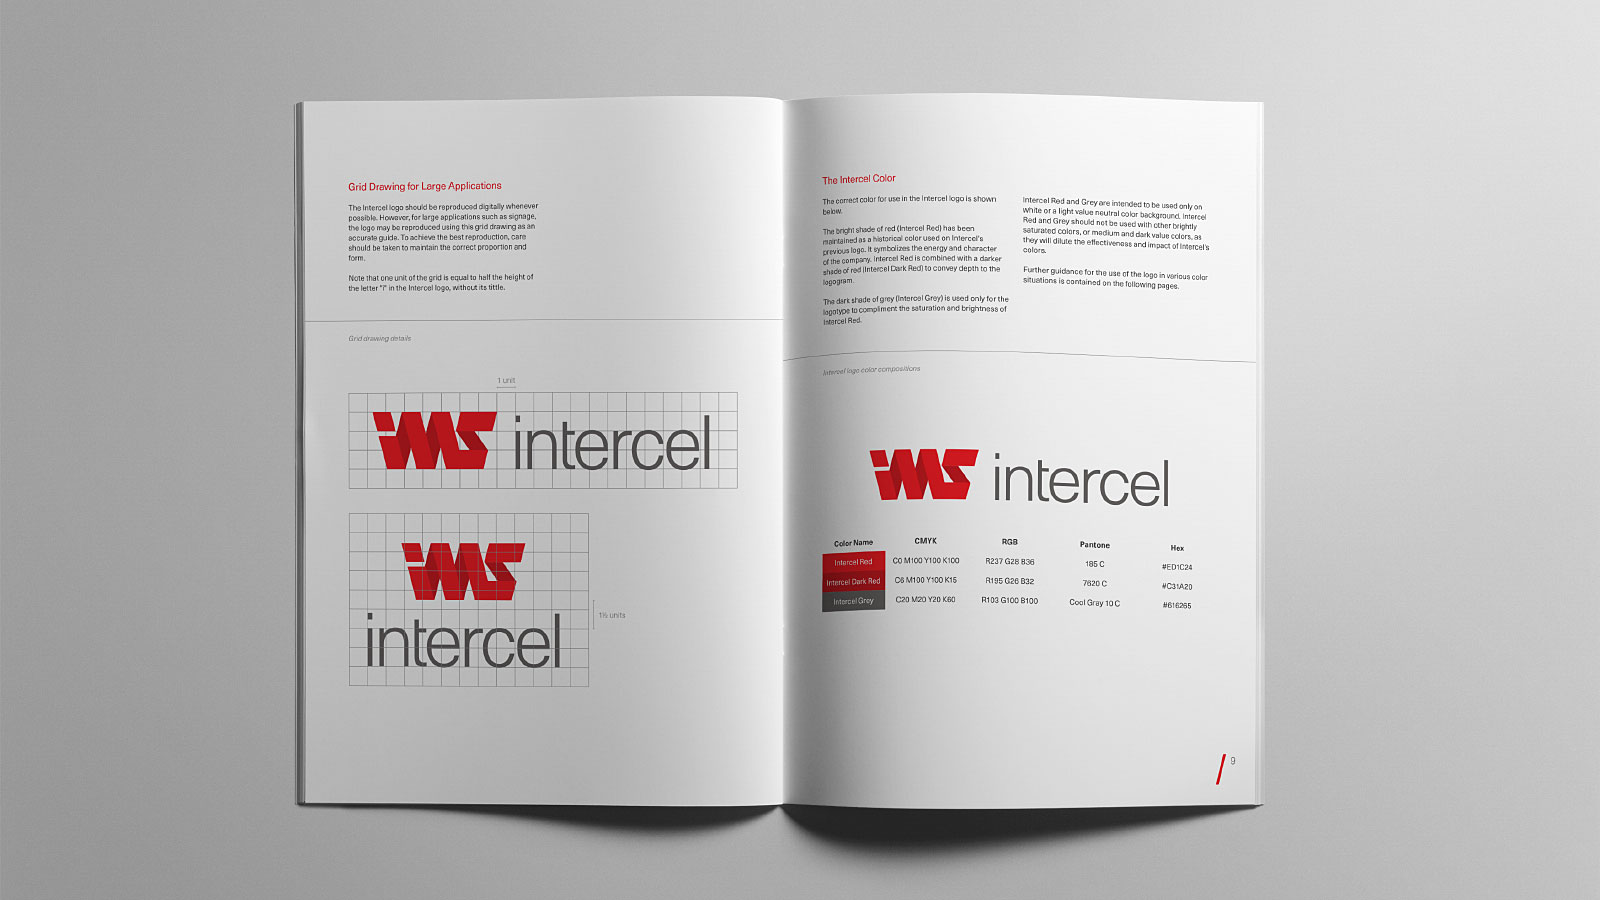 Intercel - Identity Guidelines